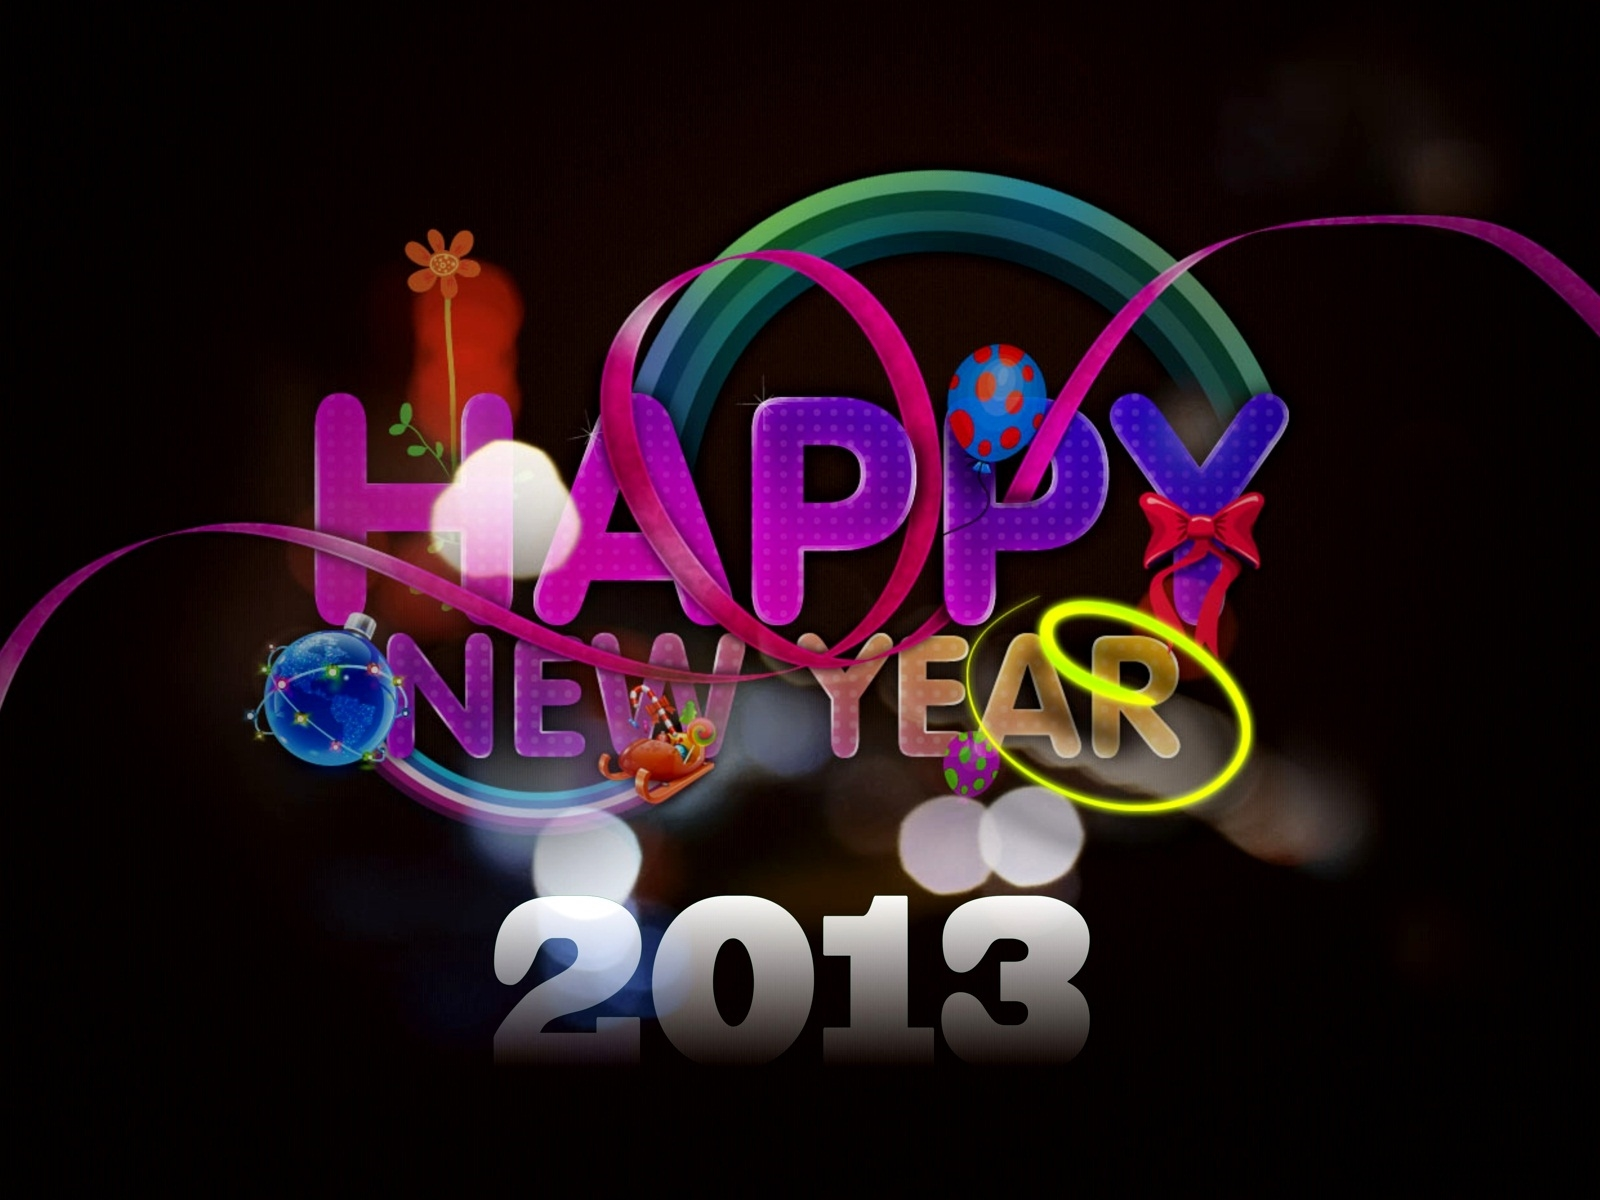 Internet Advertising New Year 2013 Is Coming And Every One Is Ready To